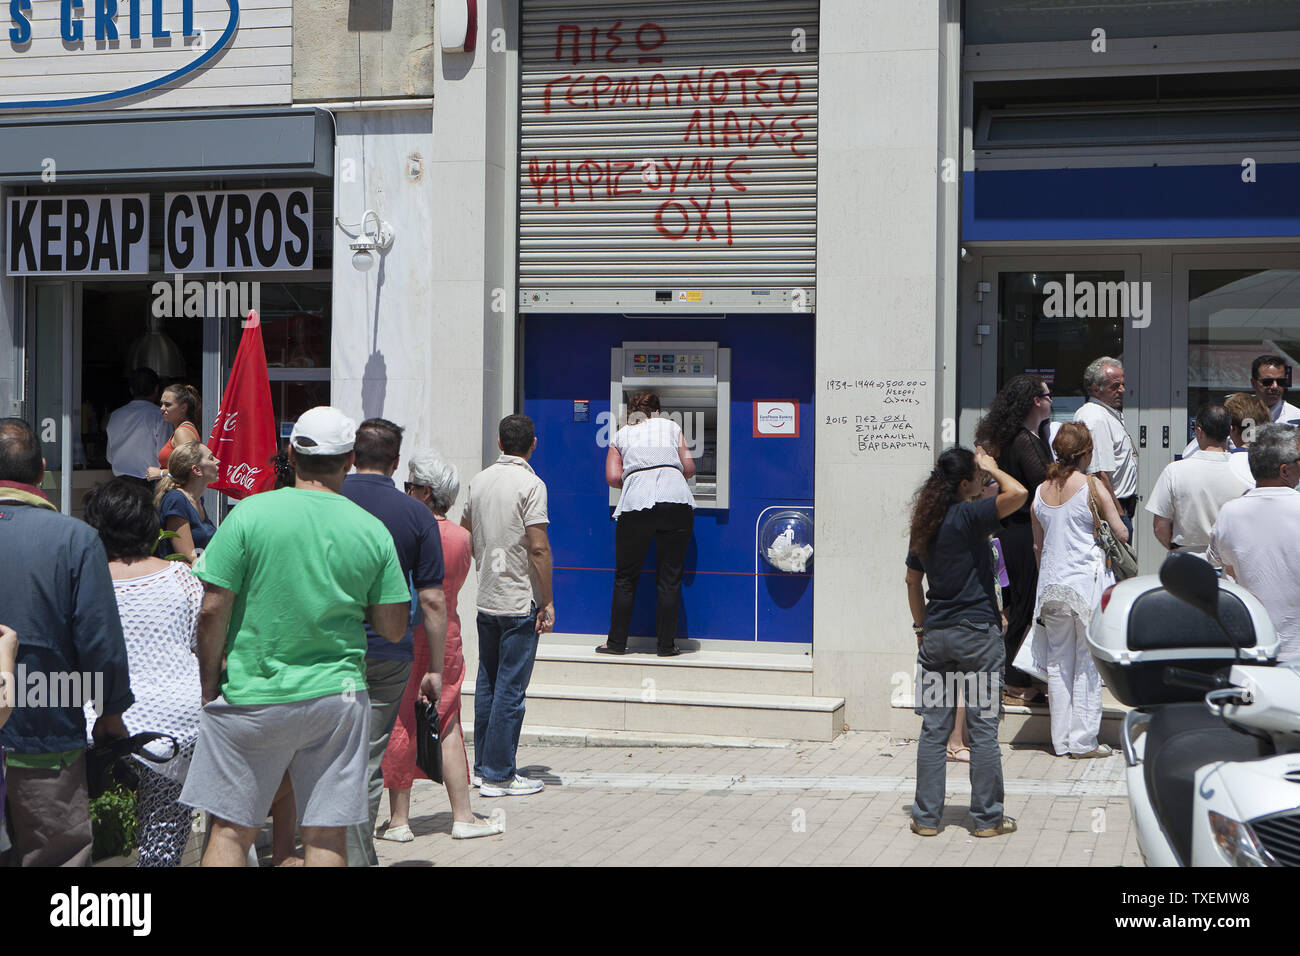 Eurobank Greece High Resolution Stock Photography And Images Alamy Rakshit mehta and principal marketing services, dr. https www alamy com people line up at an atm outside an eurobank branch in athens greece on july 8 2015 greece asked for more funds from the european union as it prepared a last ditch effort on economic reforms to stay in the euro before a fast approaching deadline photo by dimitris michalakisupi image257249924 html